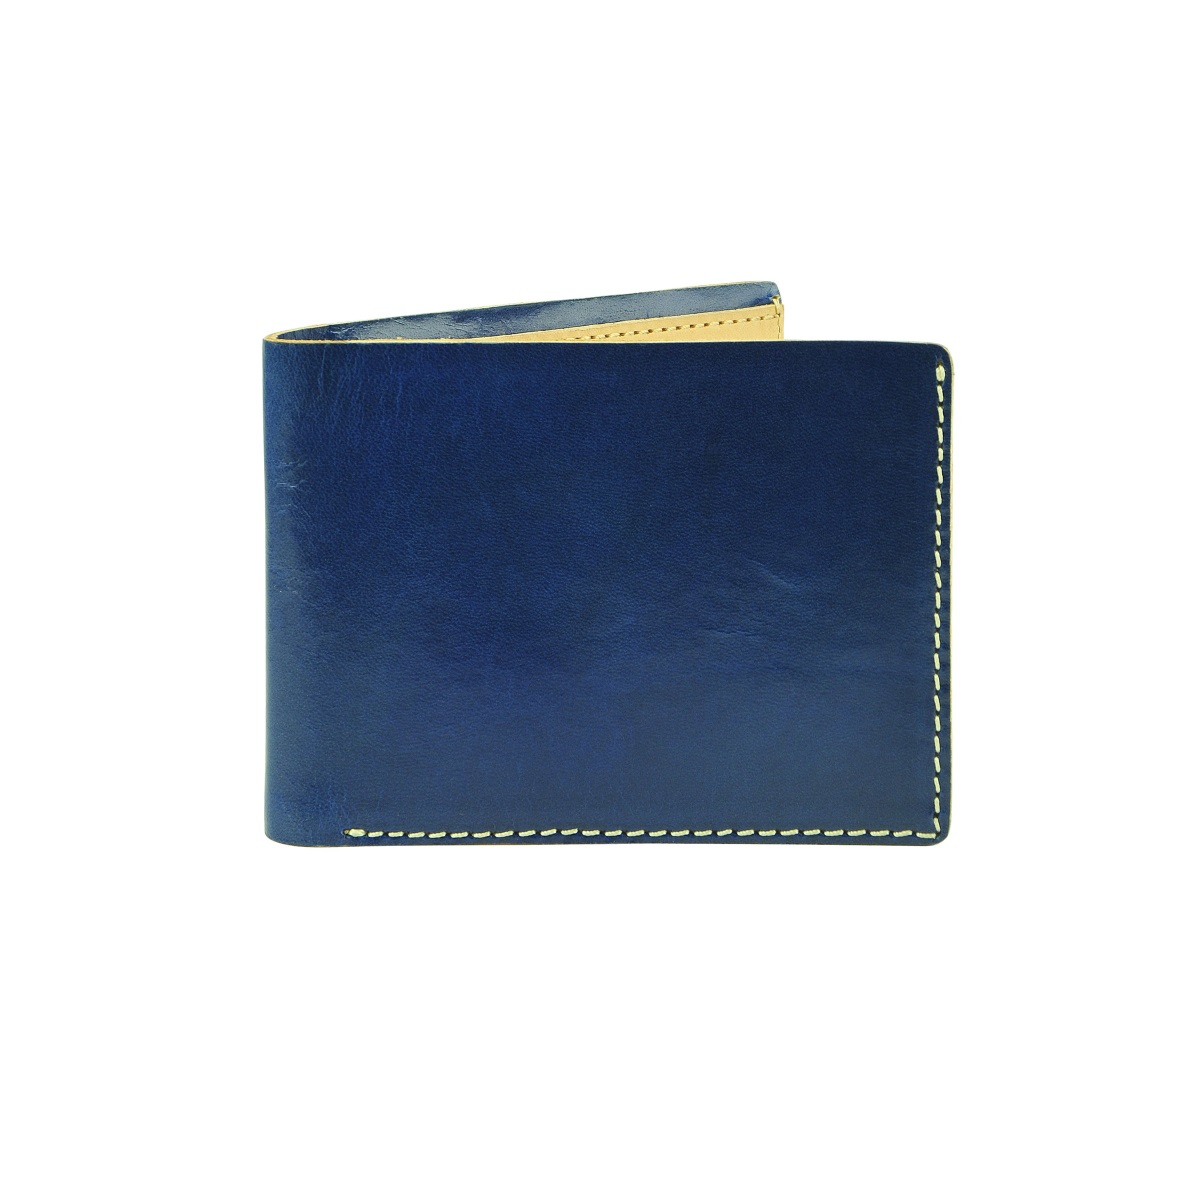 Superglaze Leather Wallet - Cobalt